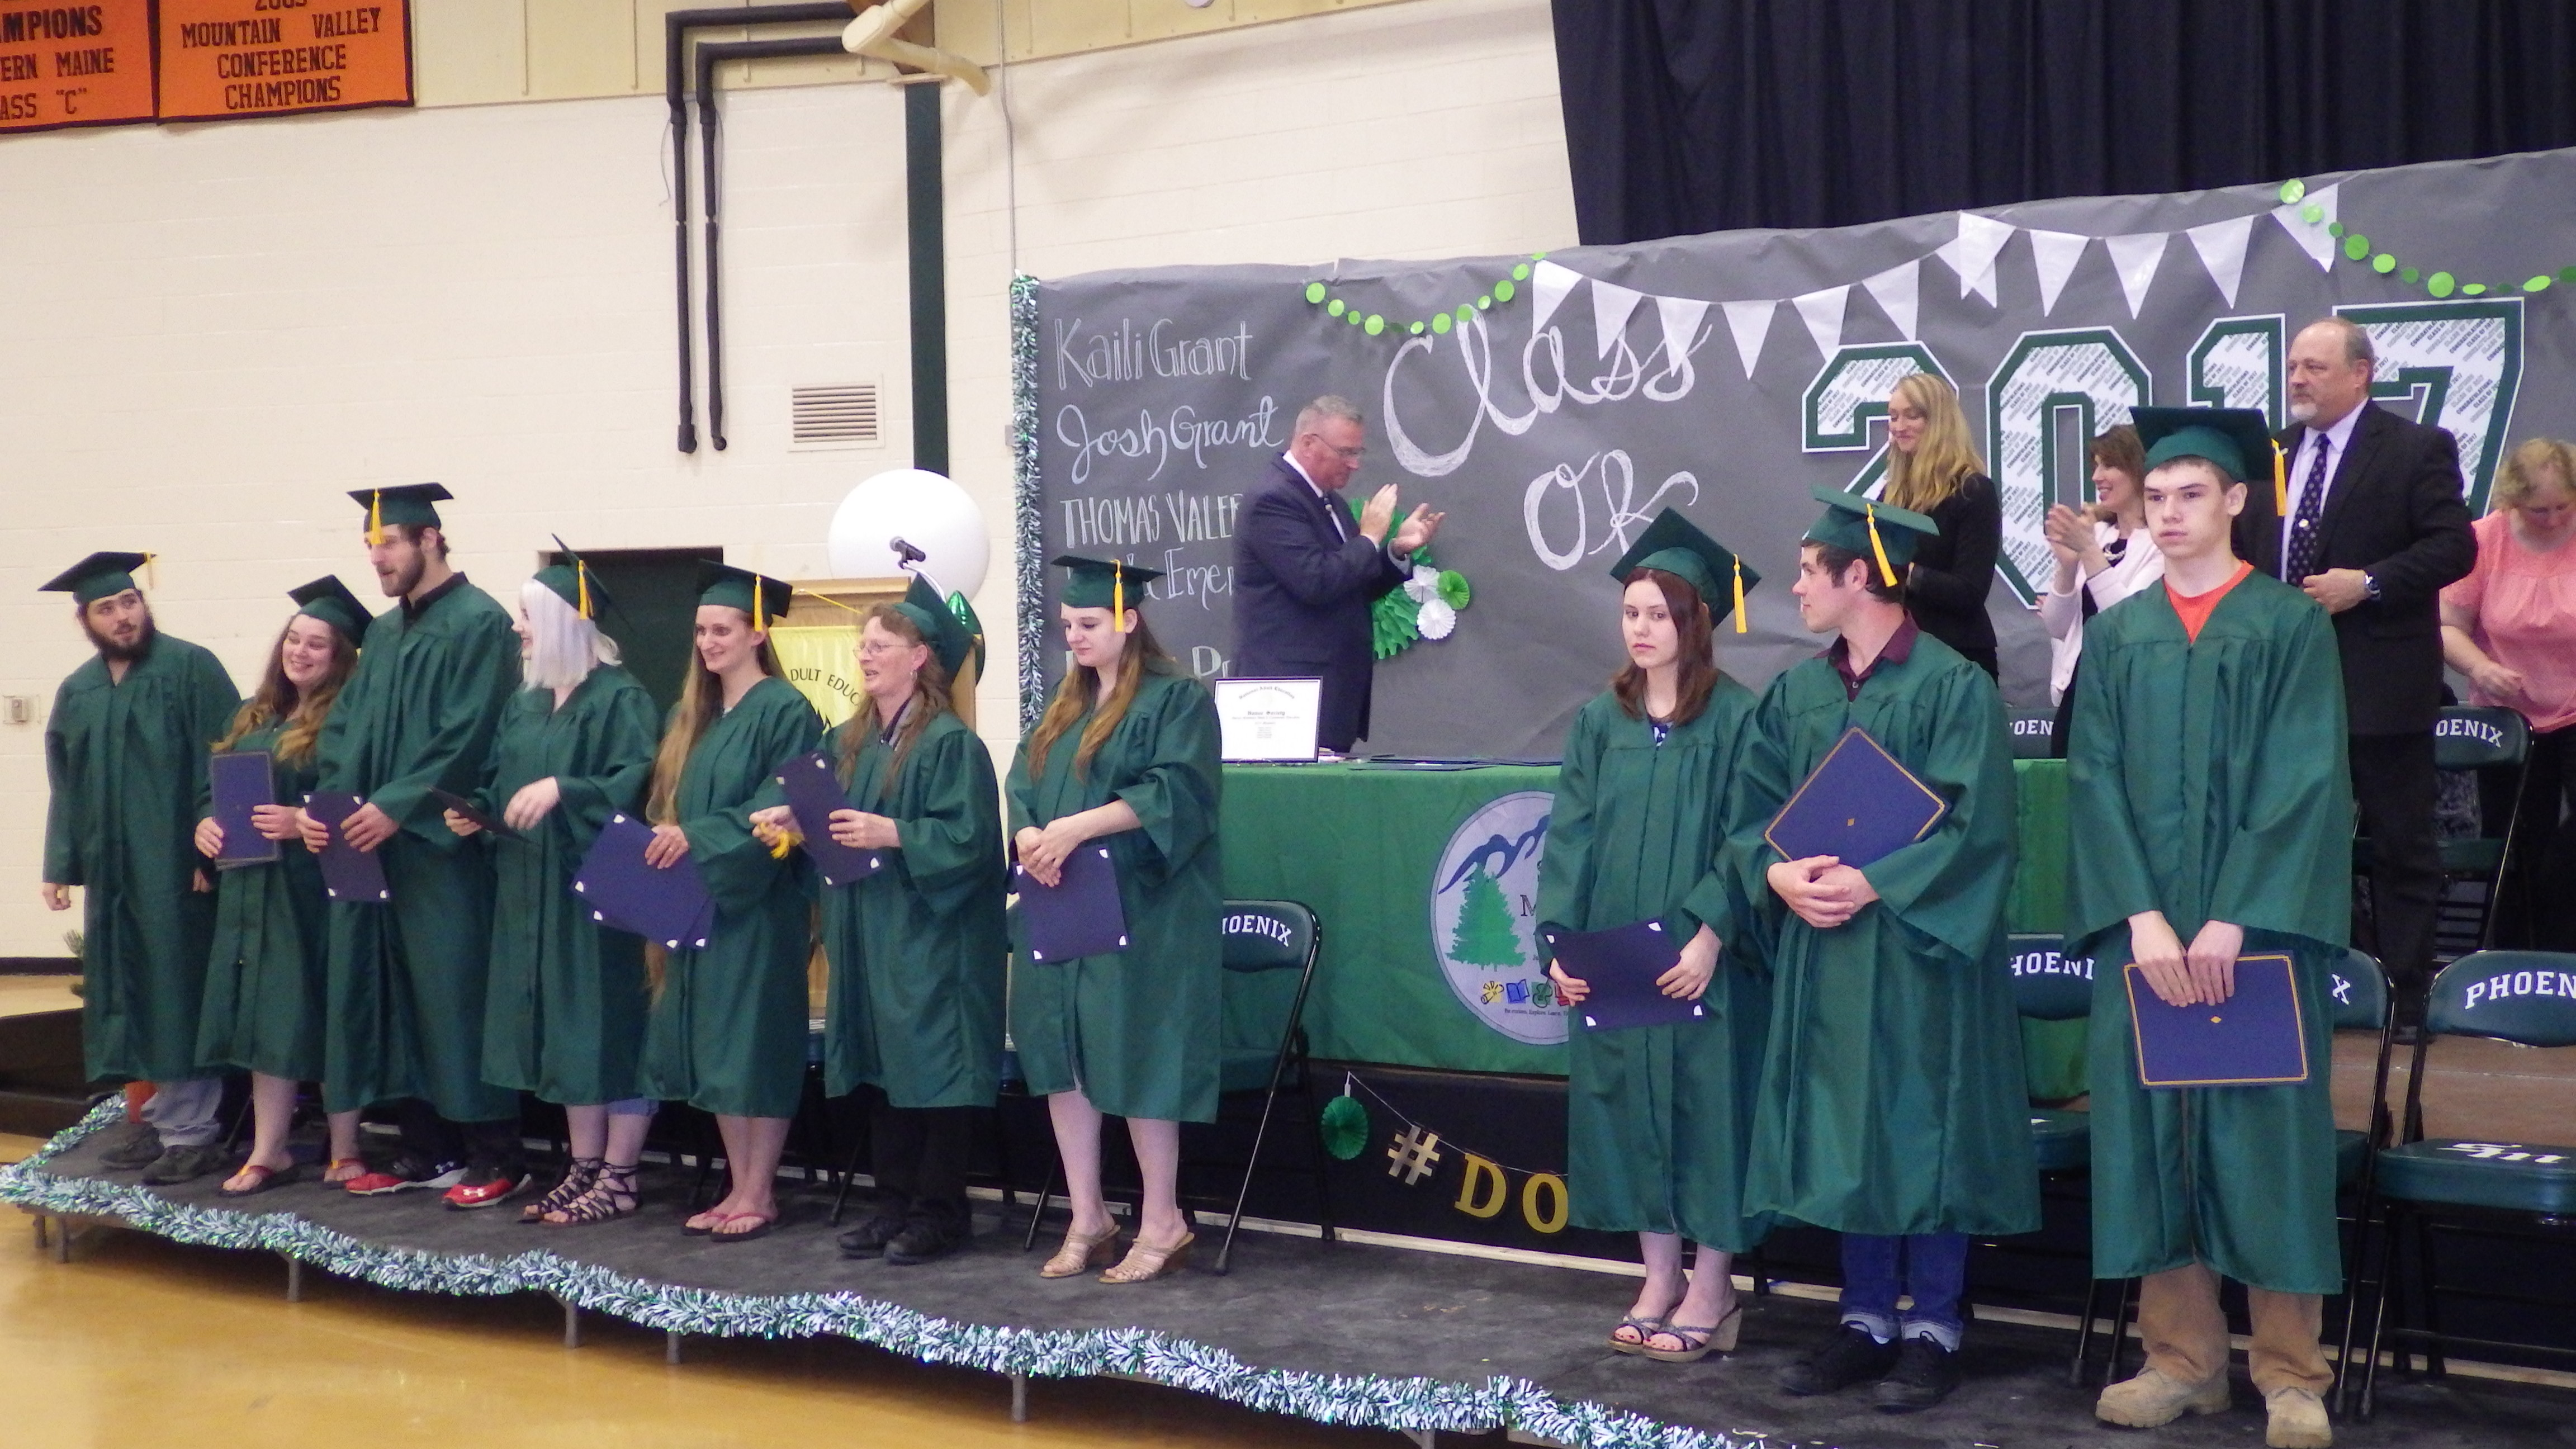 The Spruce Mountain Adult & Community Education Class of 2017.